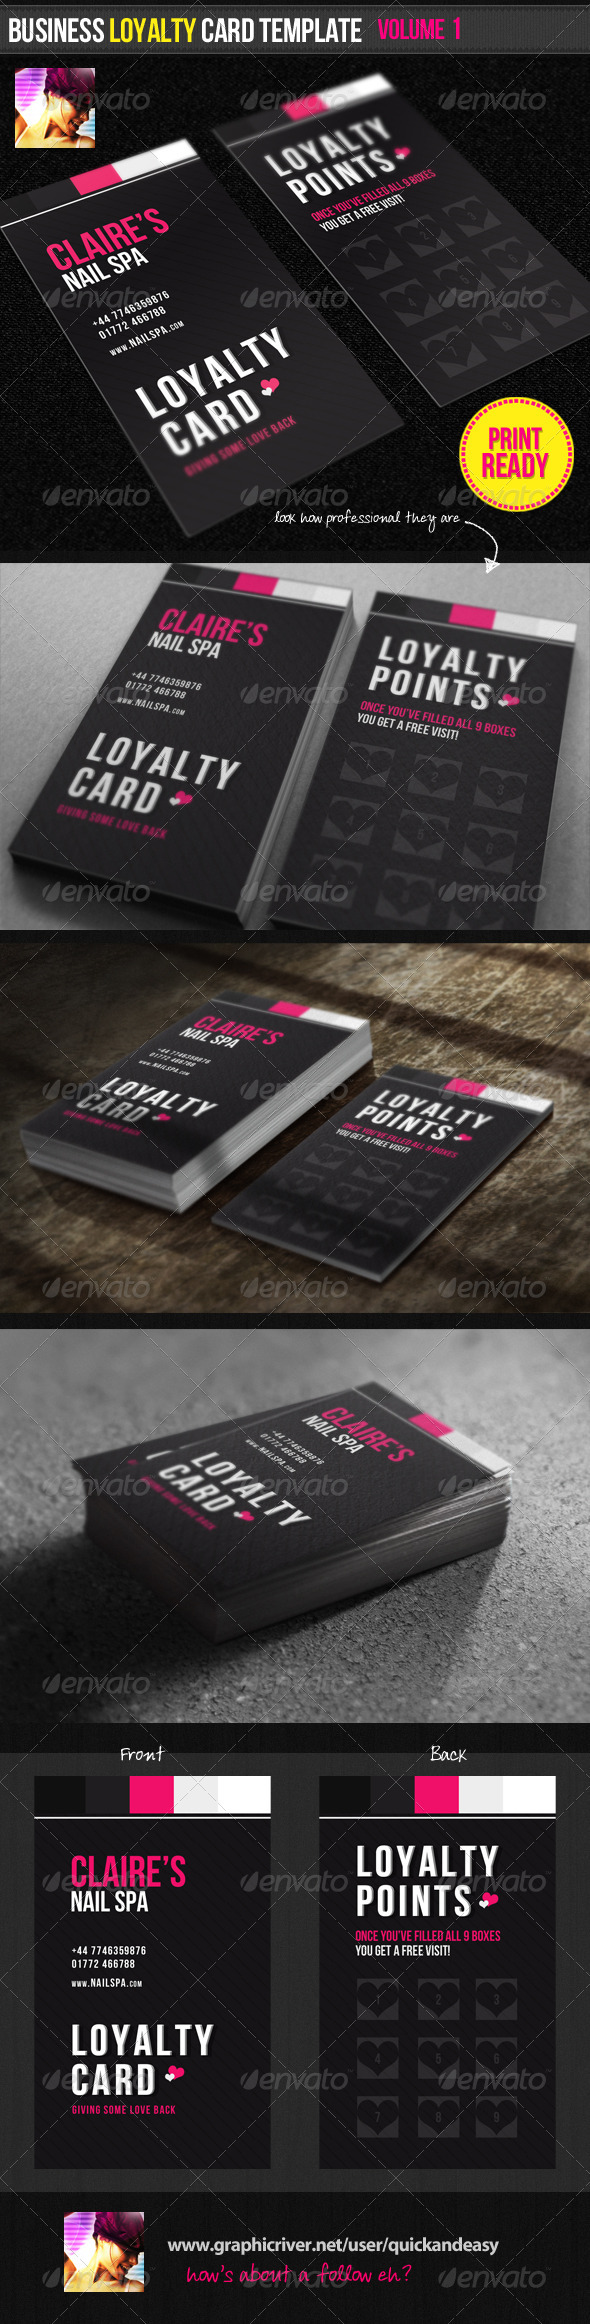 GraphicRiver Business Loyalty Card Template Vol.1 1683400